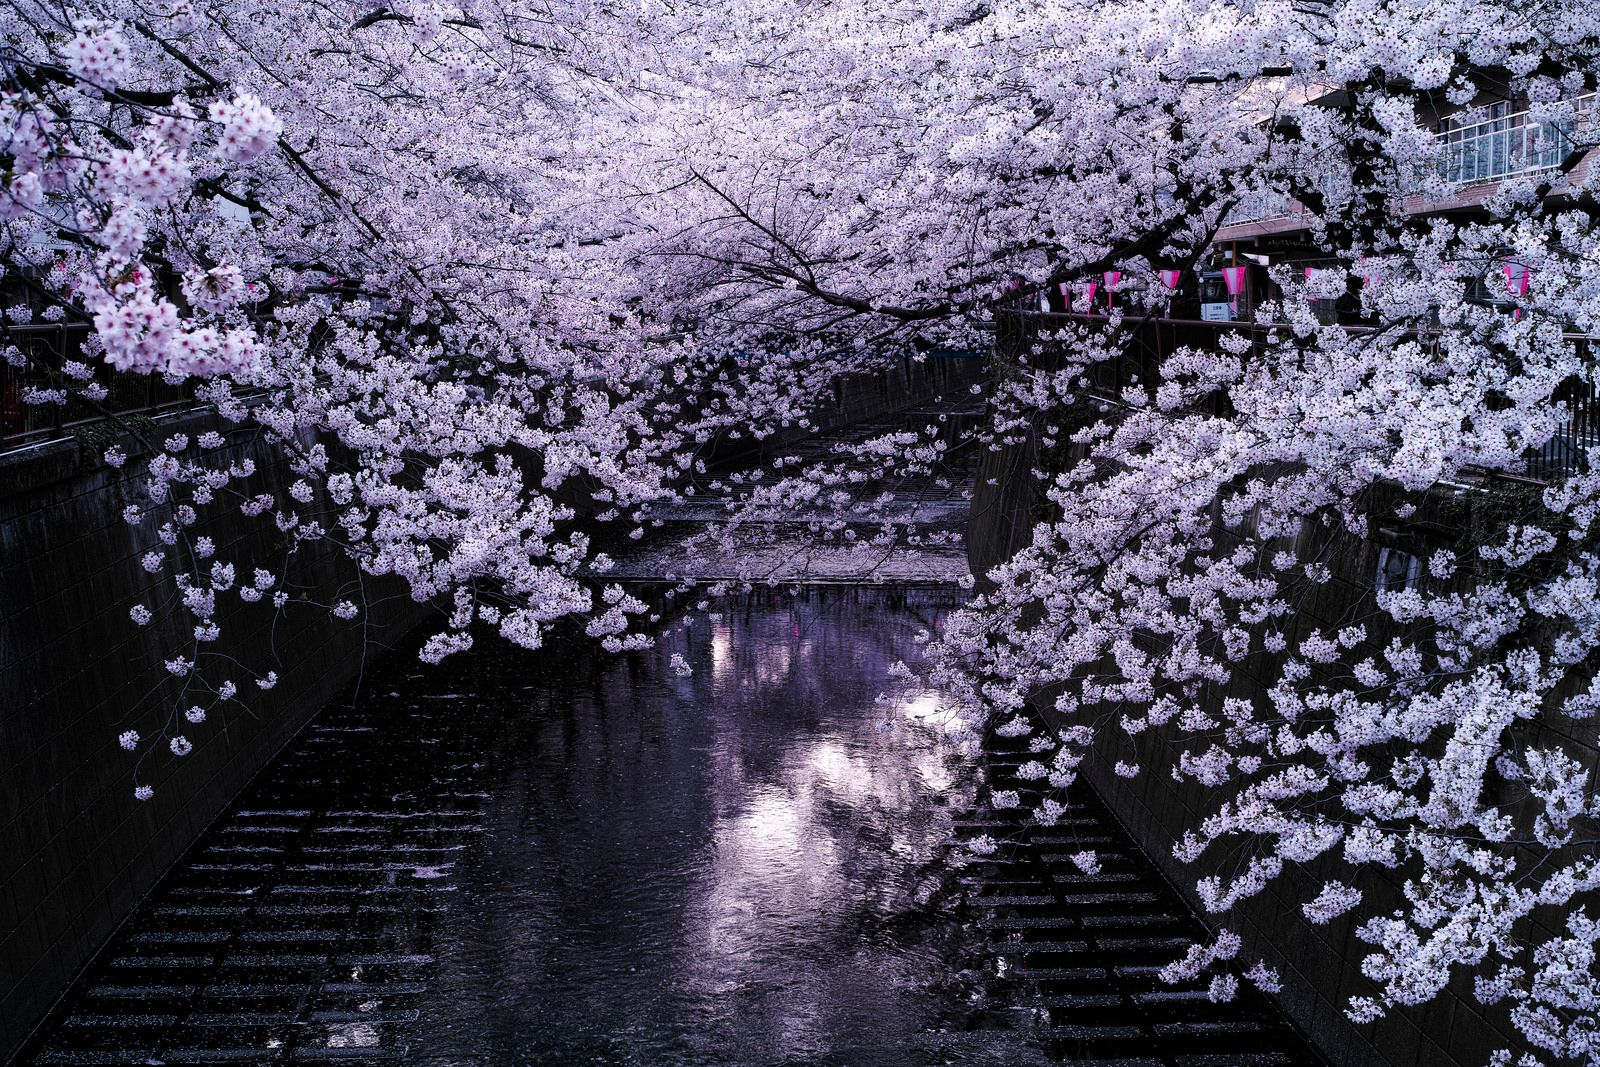 Cherry Blossoms Over The Meguro River In Tokyo Cherry Blossom Japan Japanese Cherry Blossom Cherry Blossom Tree